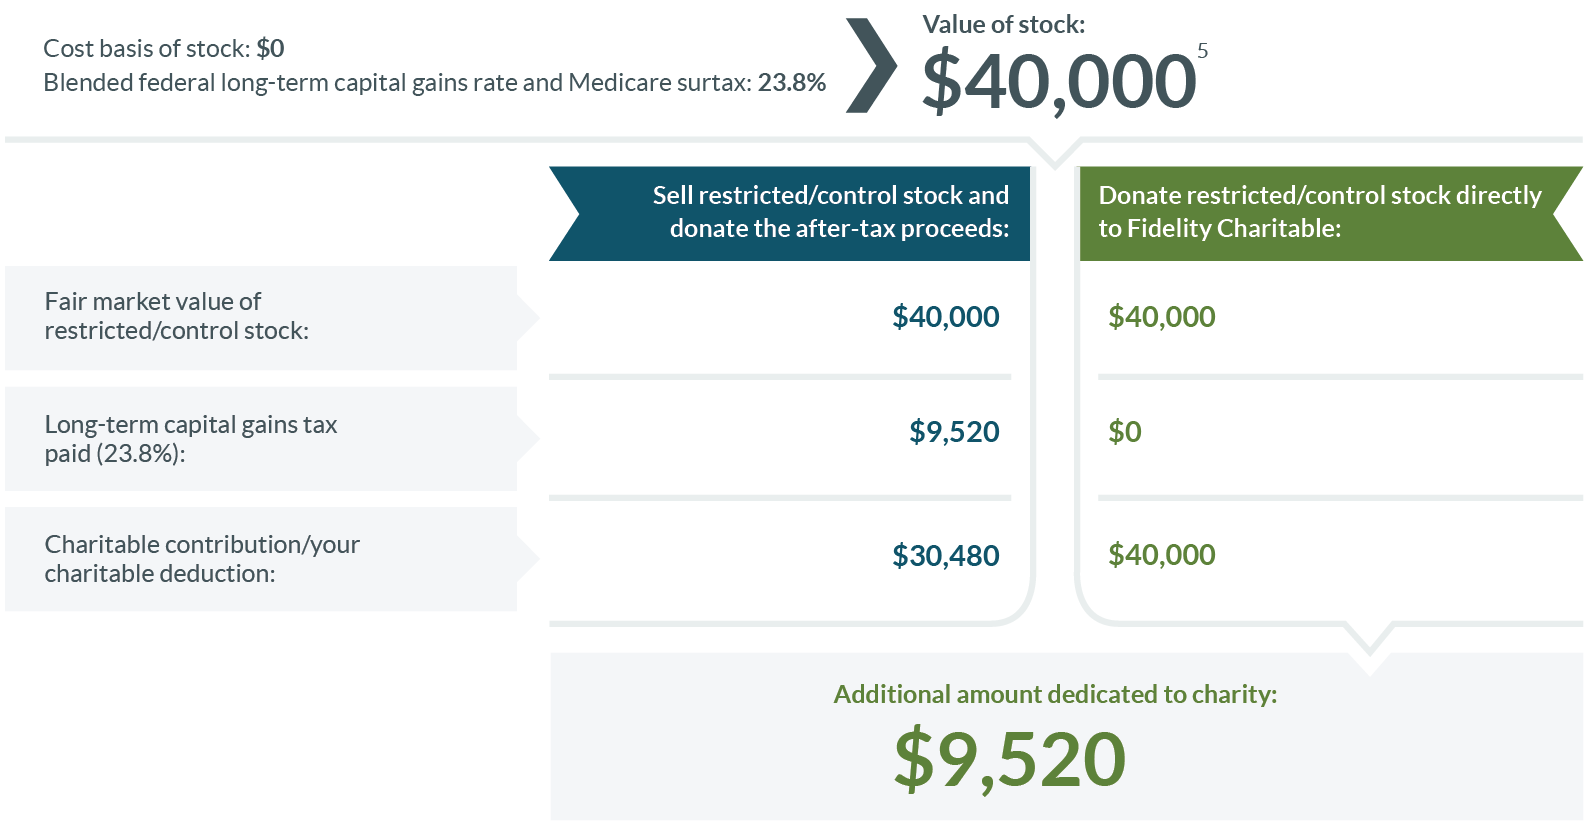 Example chart showing donation of $40,000 value of restricted or control stock to Fidelity Charitable with $0 of long-term capital gains compared to $9520 if you sold stock and donated afterwards.